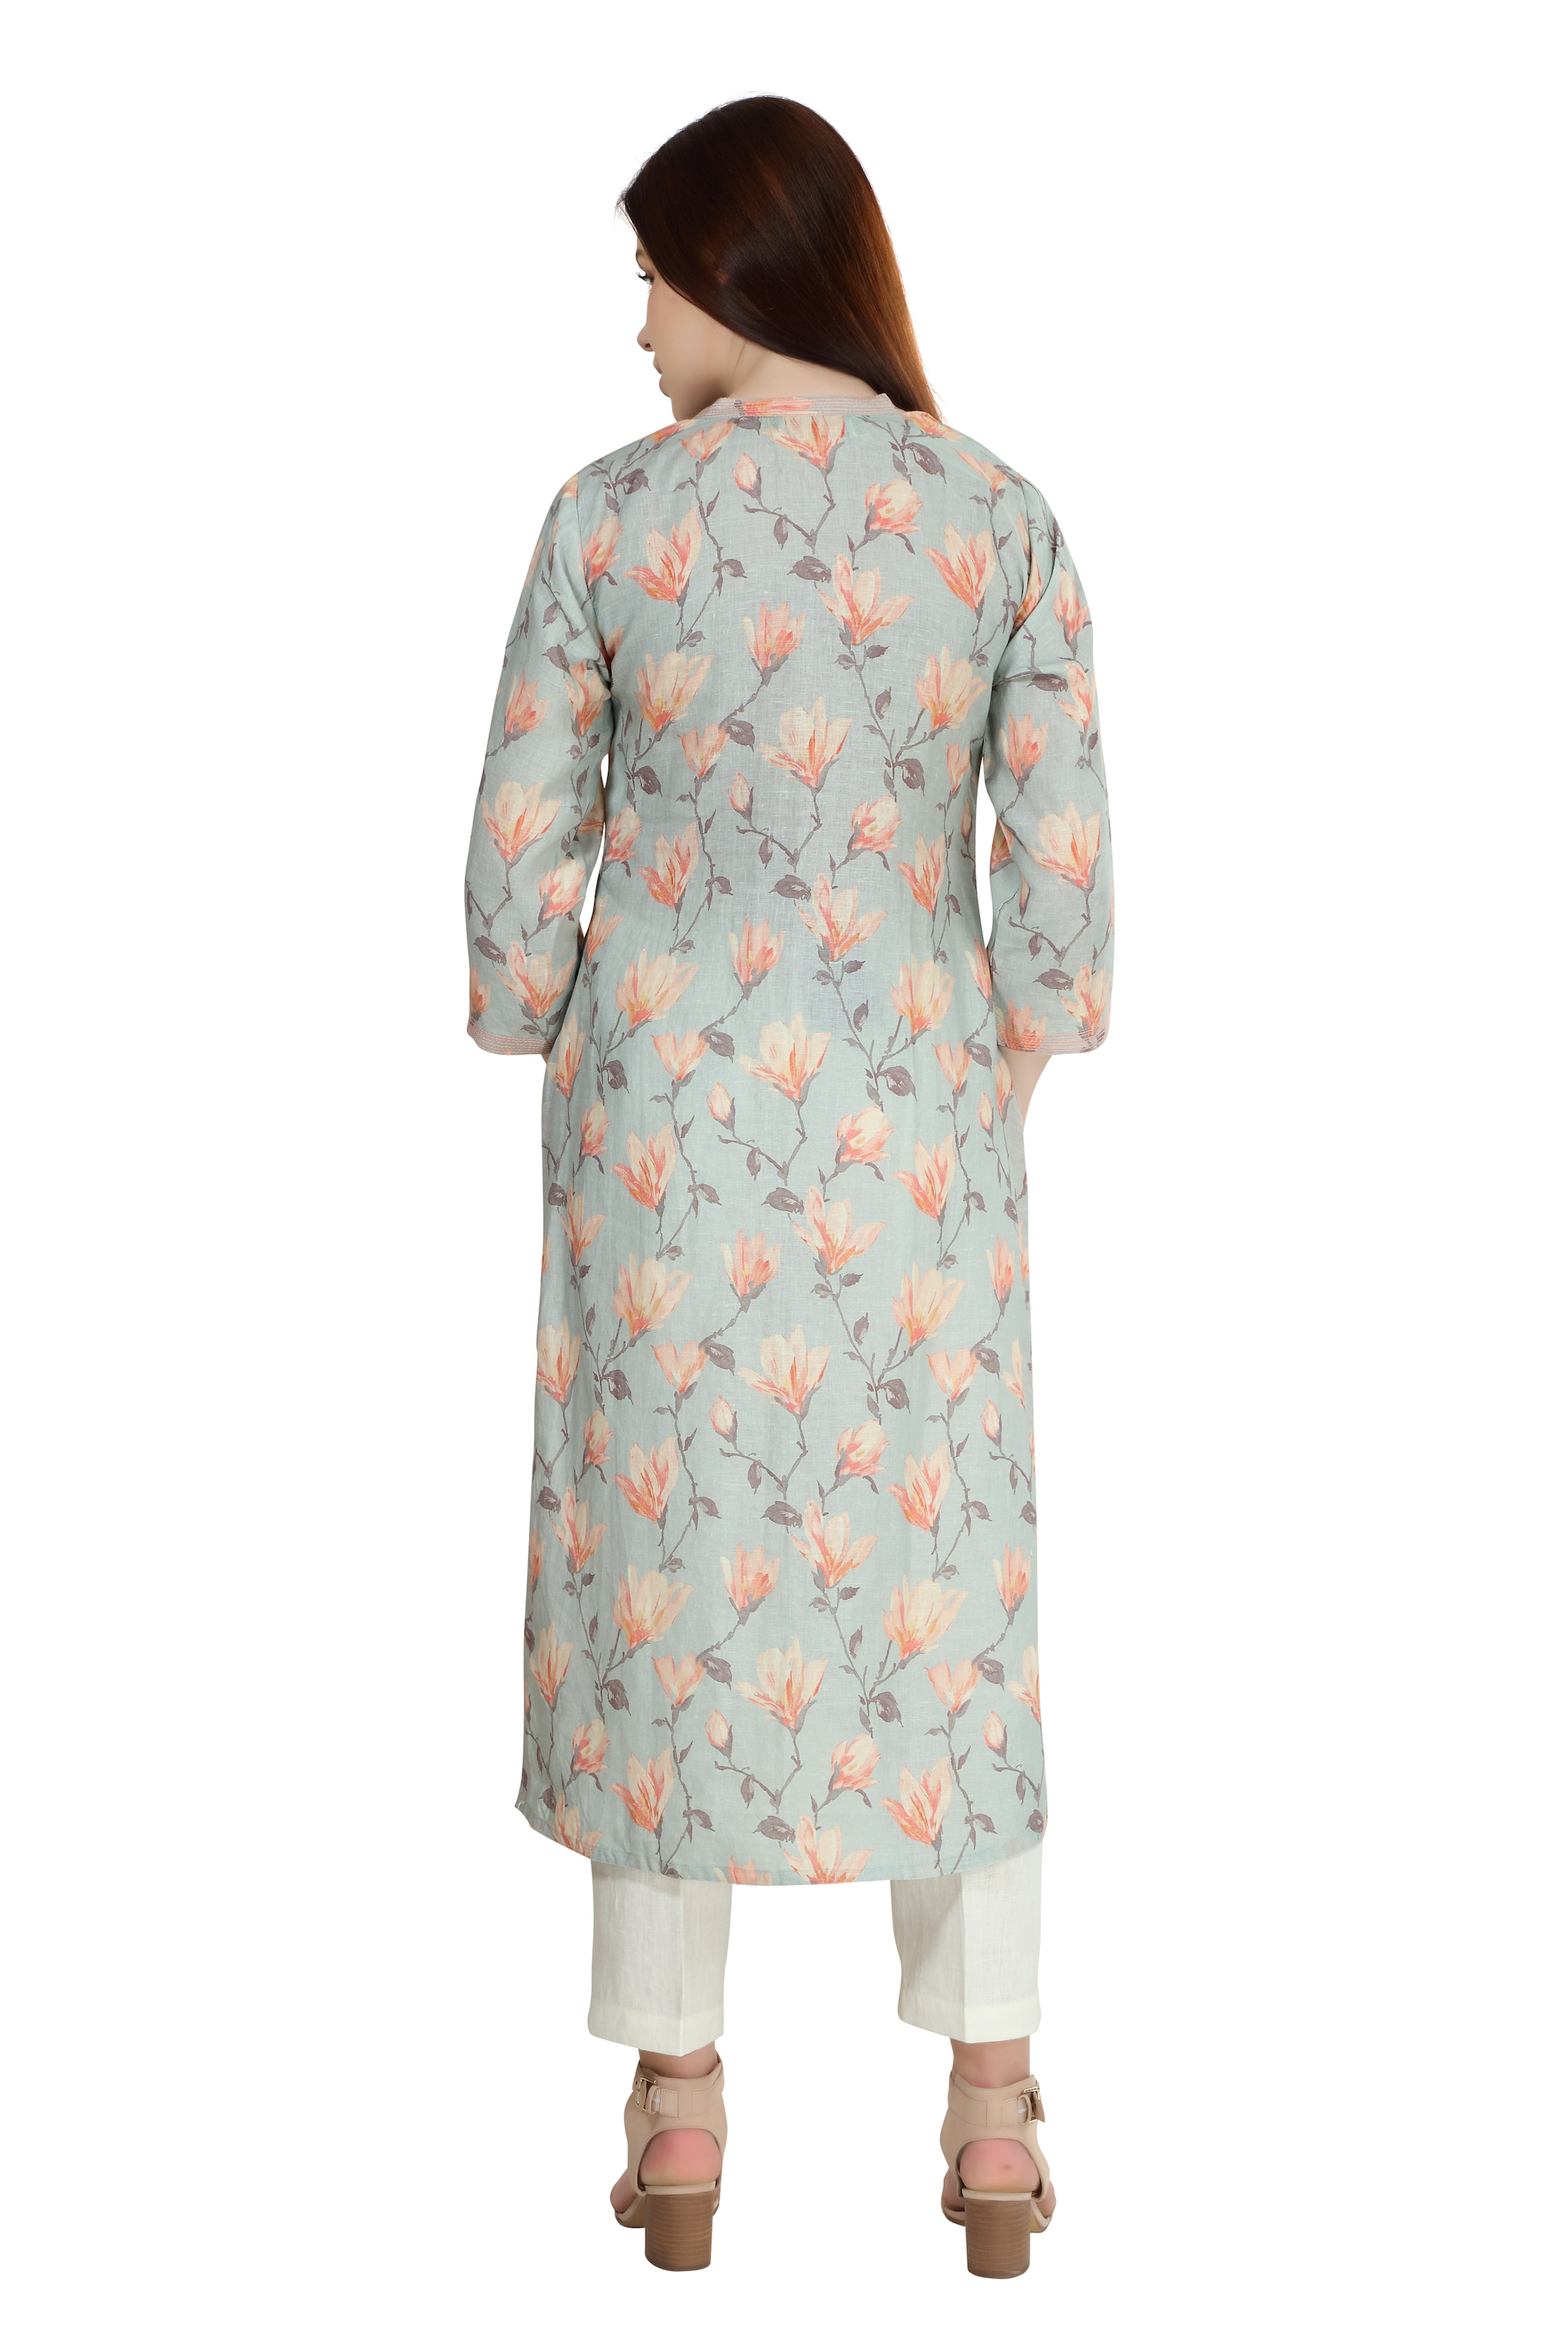 190258 Duck Egg And Coral Printed Linen Tunic XS - Duck Egg And Coral (XS,Duck Egg and Coral)